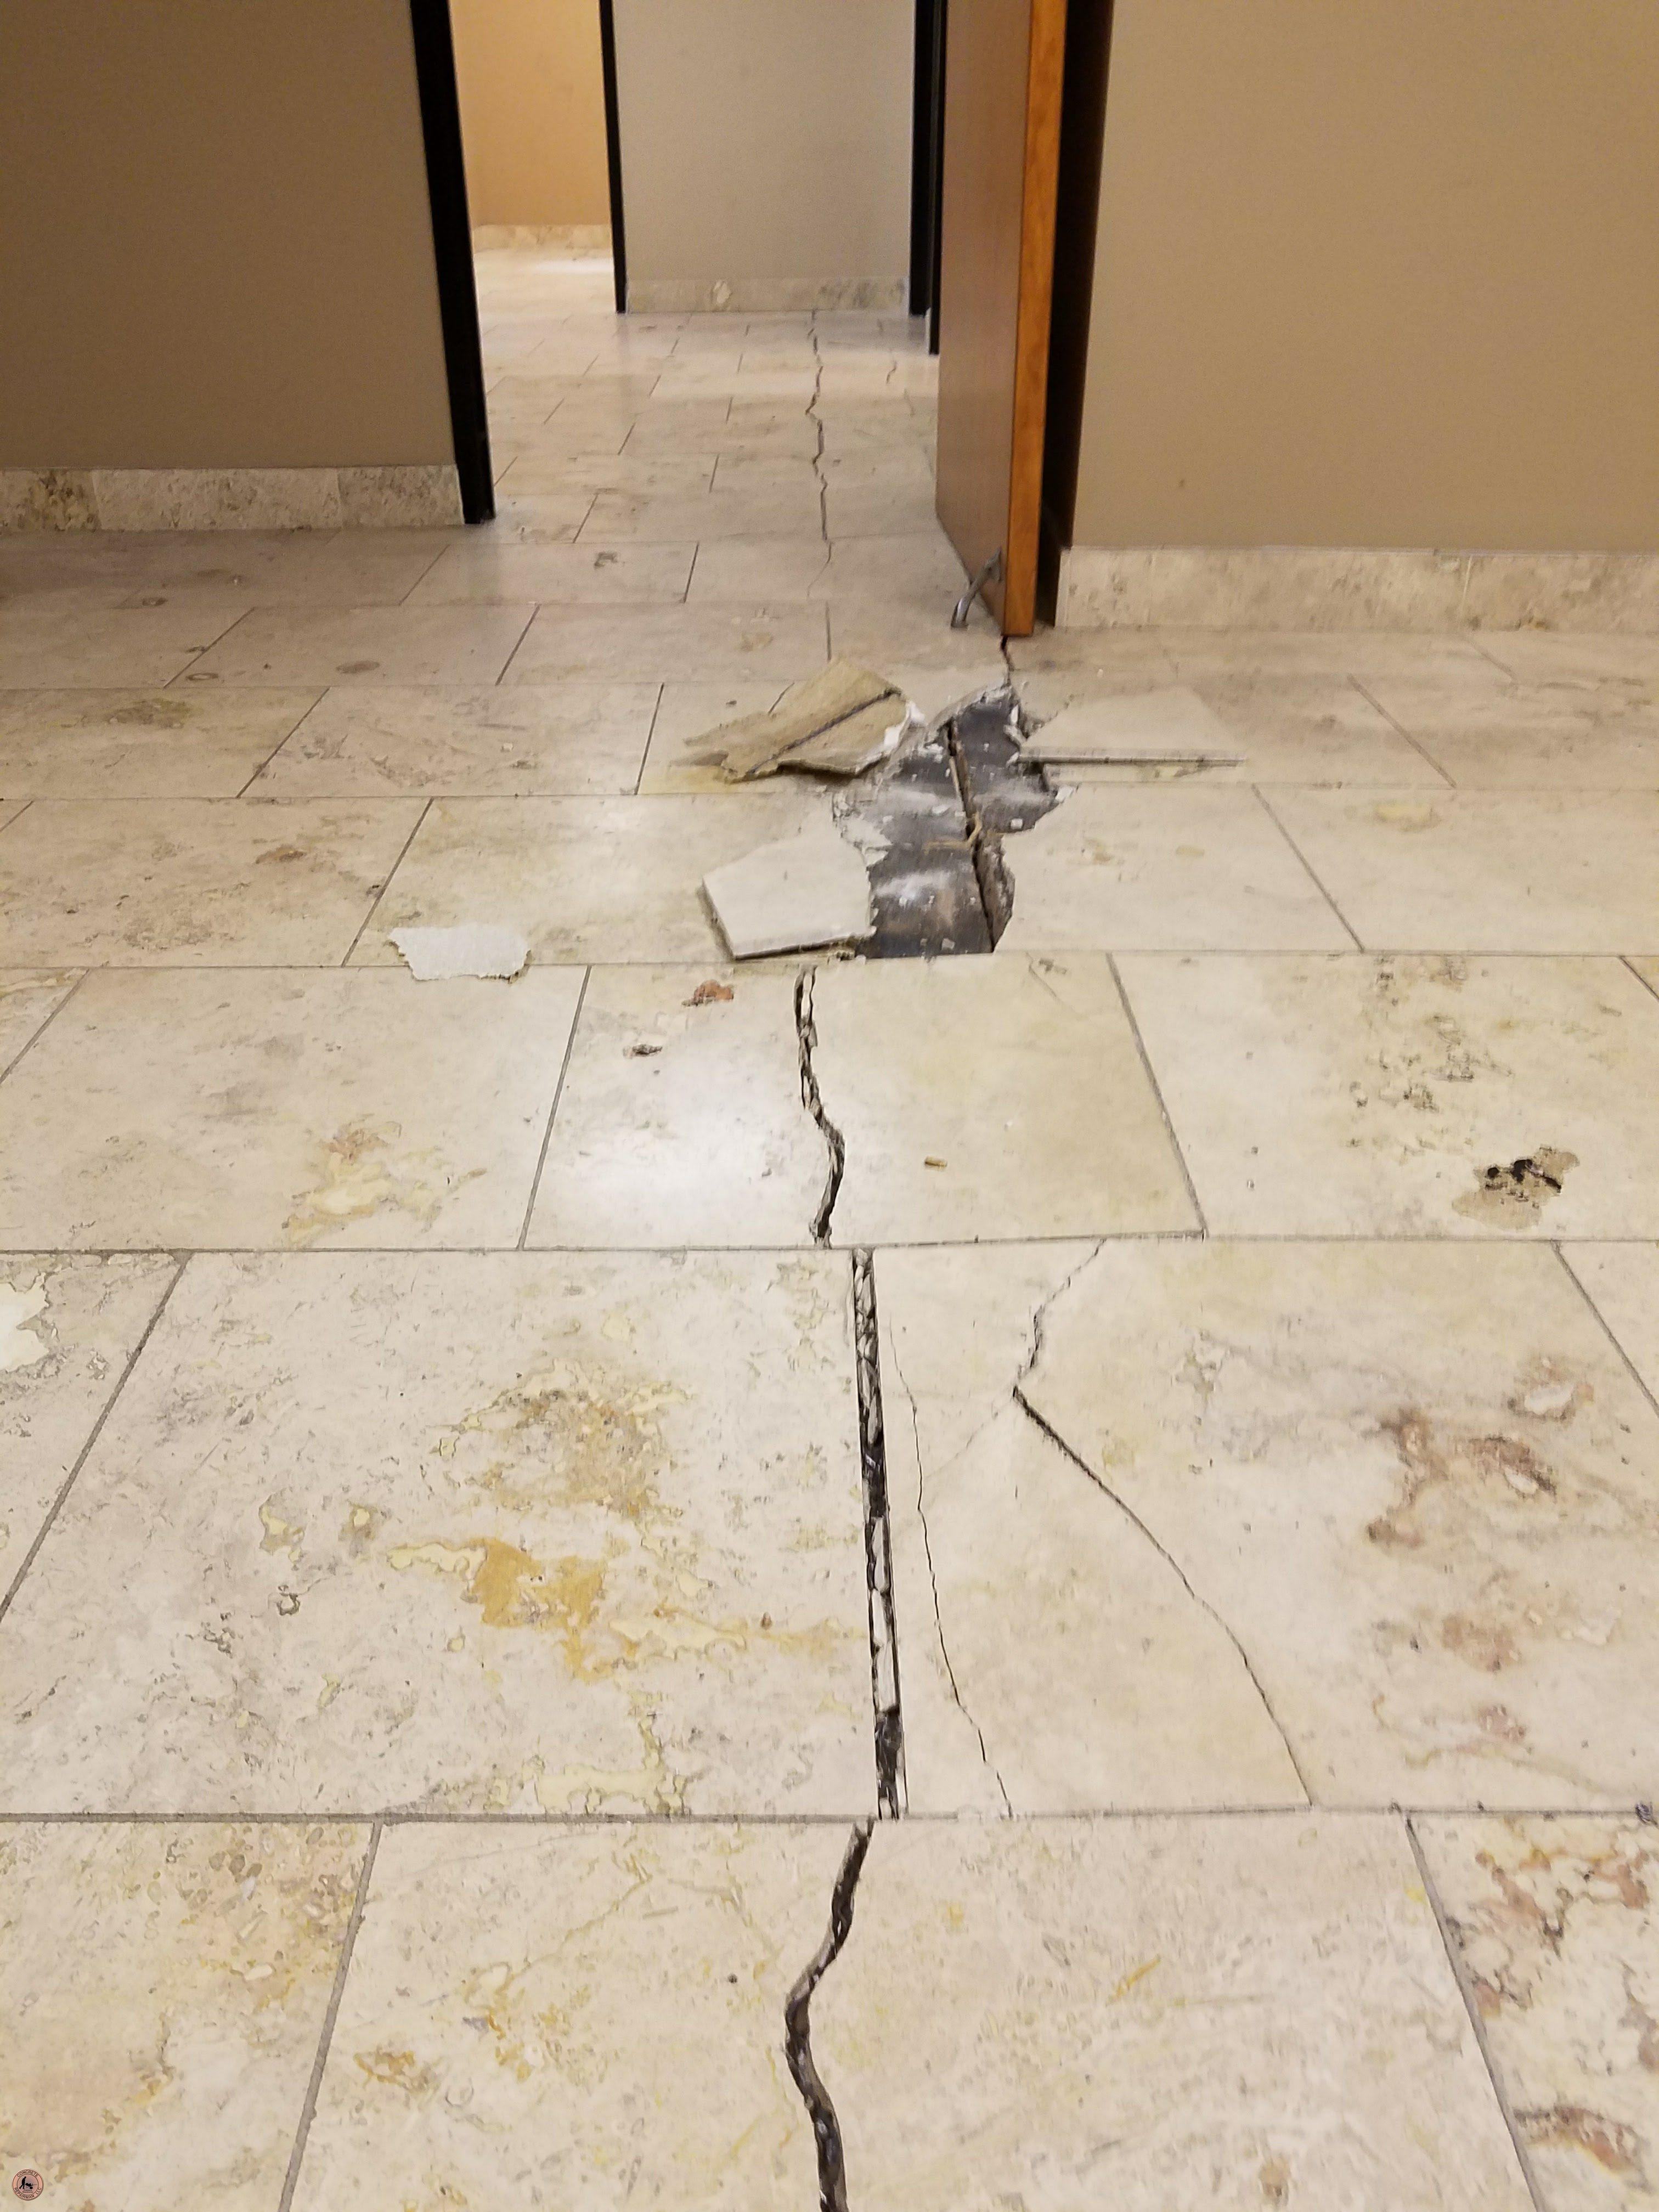 Foundation Settlement Warning Signs Causes And Solutions In Arizona - Cracked tile foundation problem